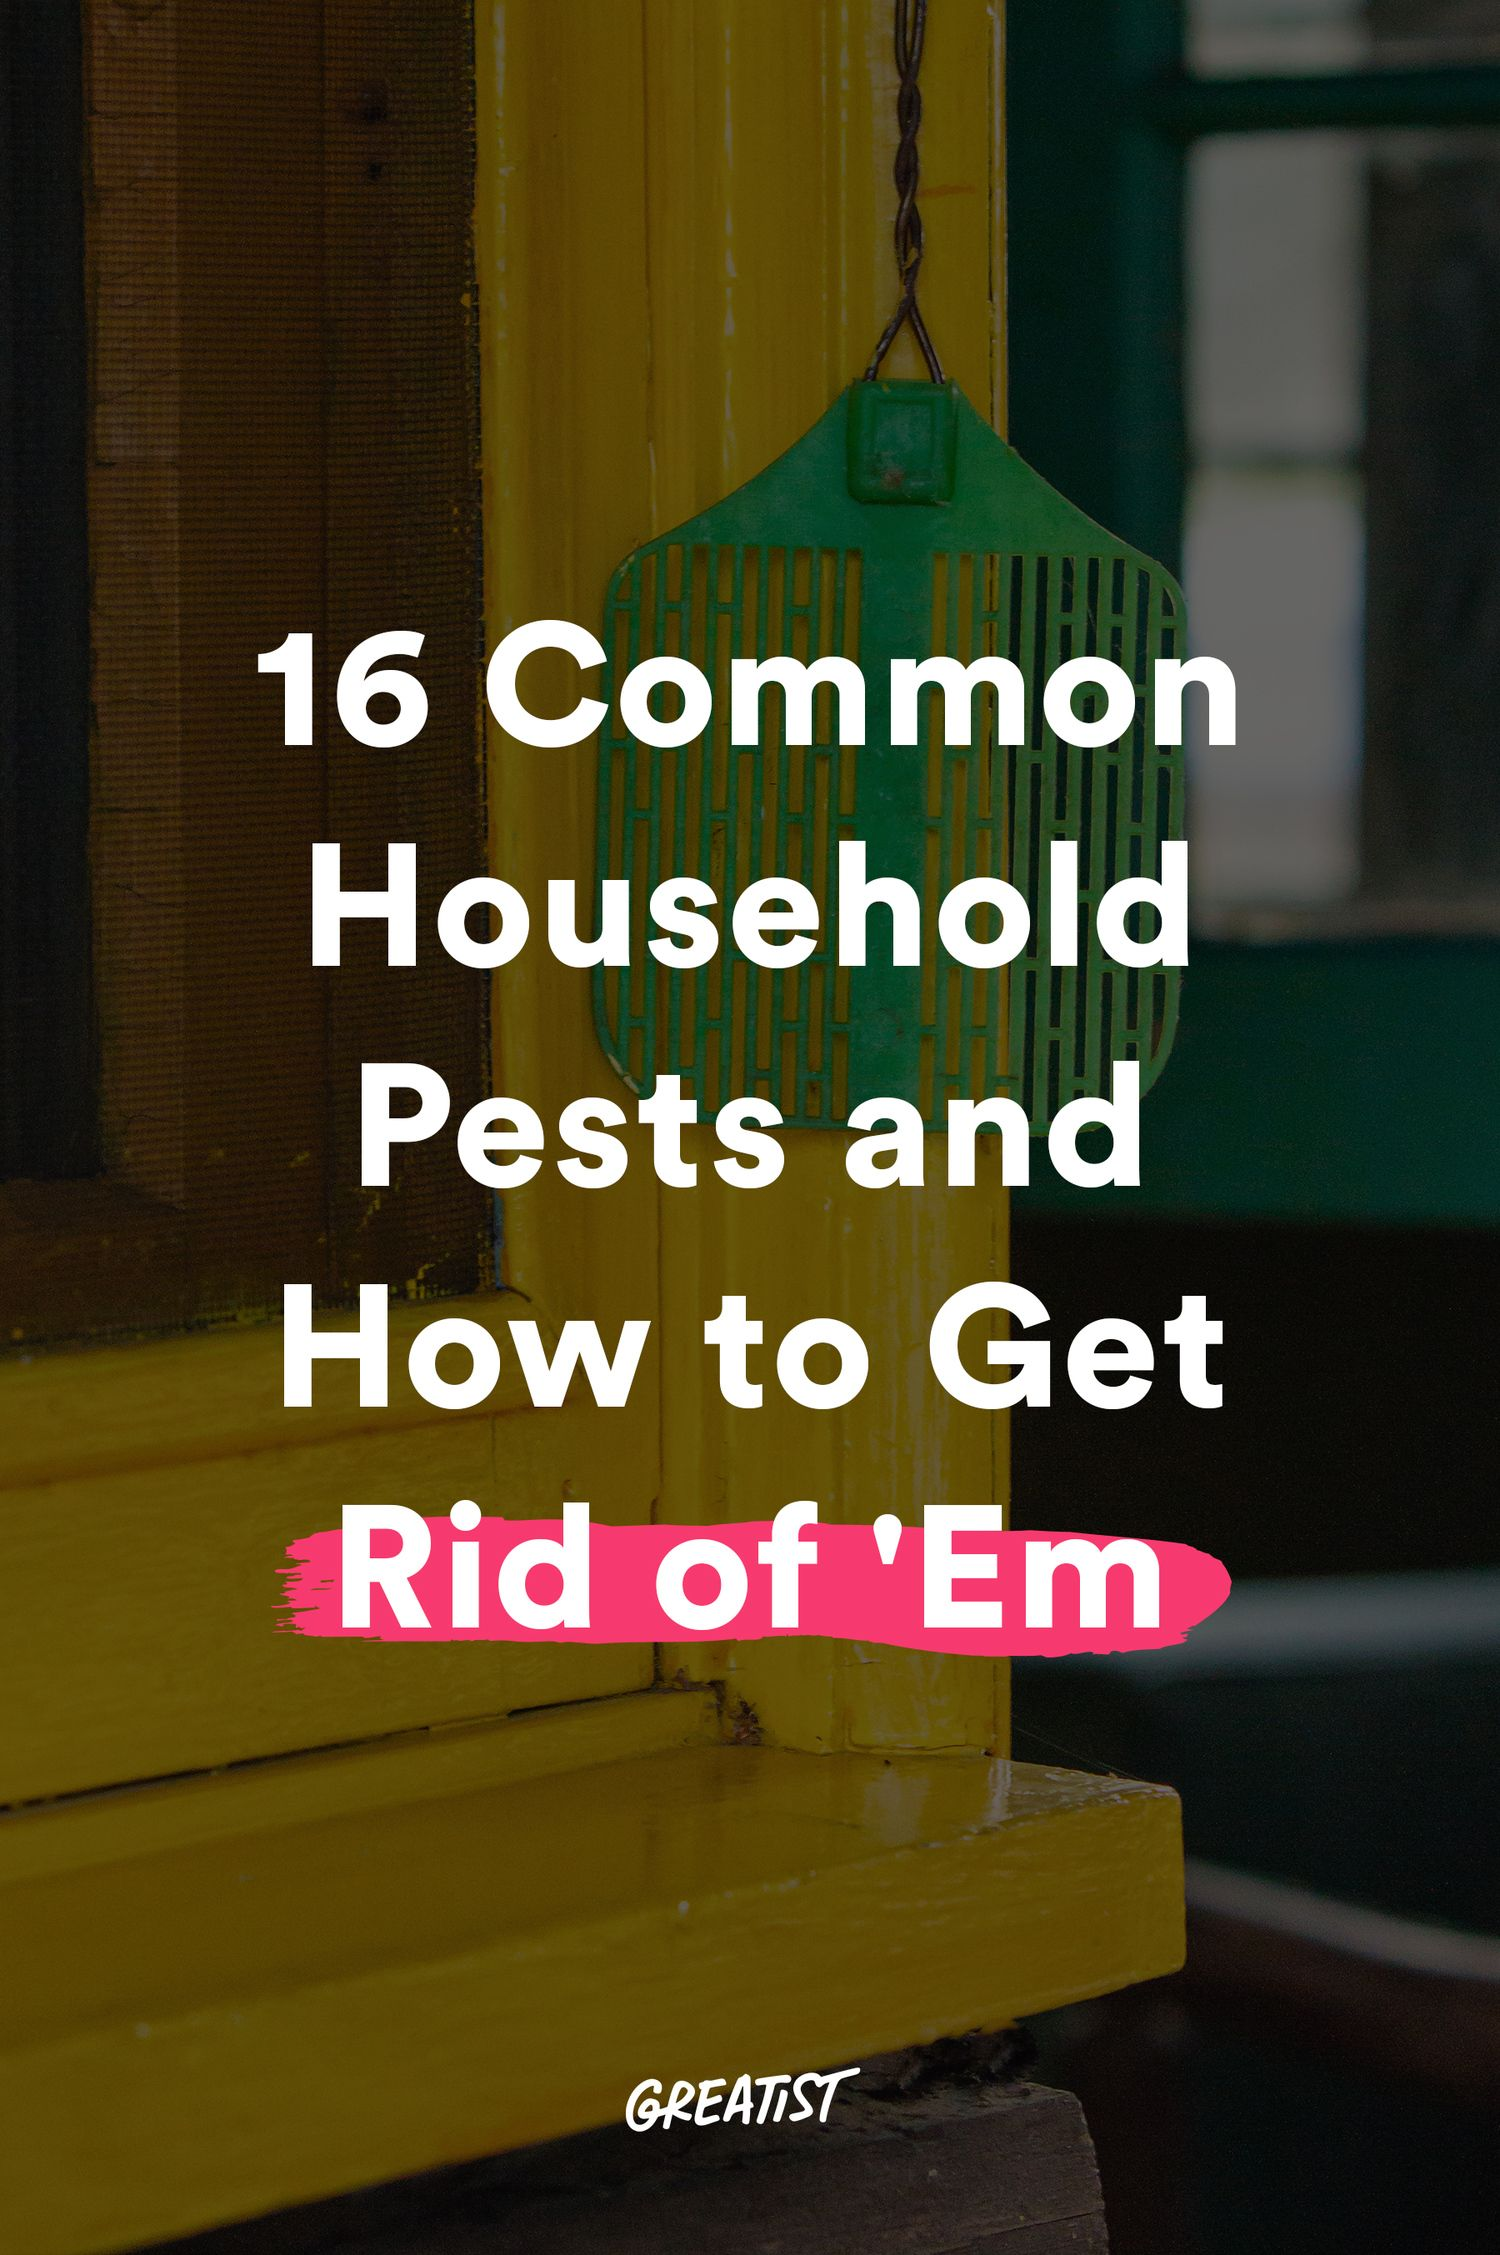 16 Common Household Pests and How to Get Rid of 'Em